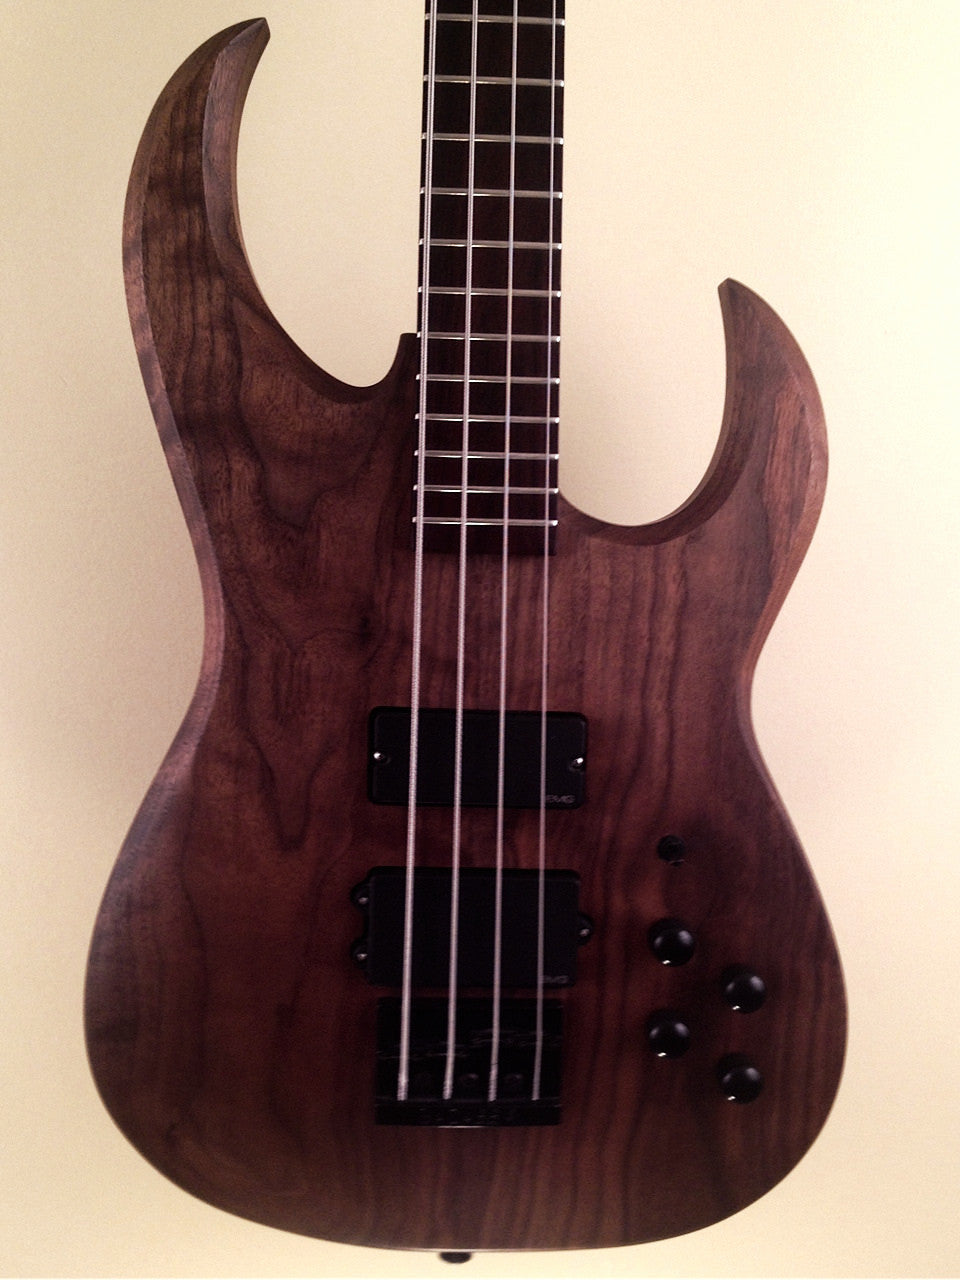 (SOLD) Neal Moser Custom Templar Scimitar 4-String Bass (made in USA)